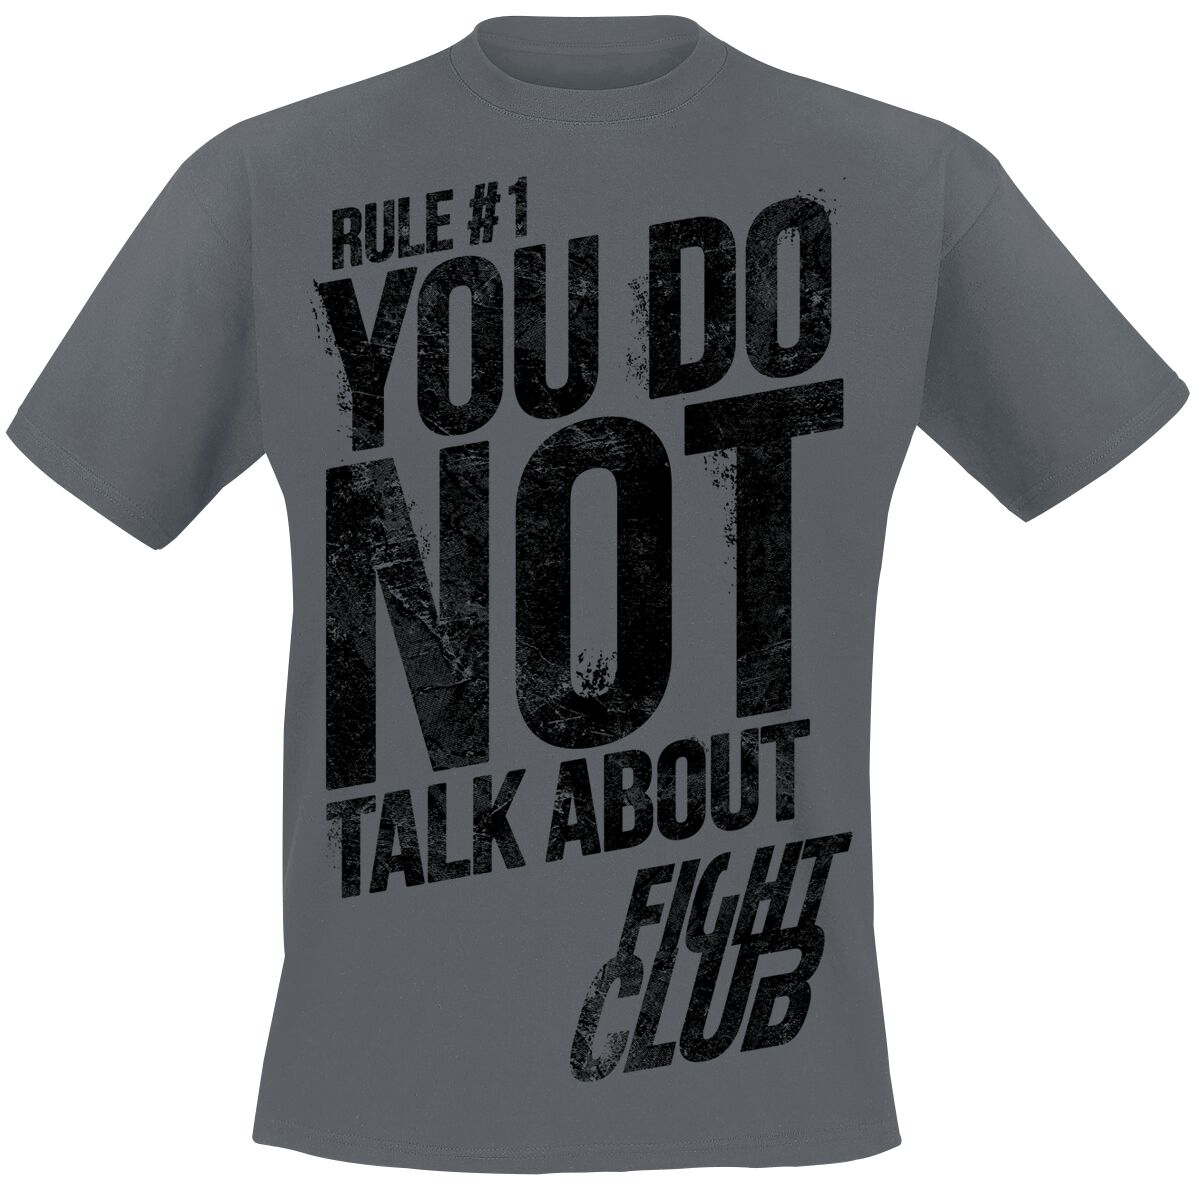 Merch dla Fanów - Koszulki - T-Shirt Fight Club Rule No. 1 - Don't Talk About Fight Club T-Shirt ciemnoszary - 377933